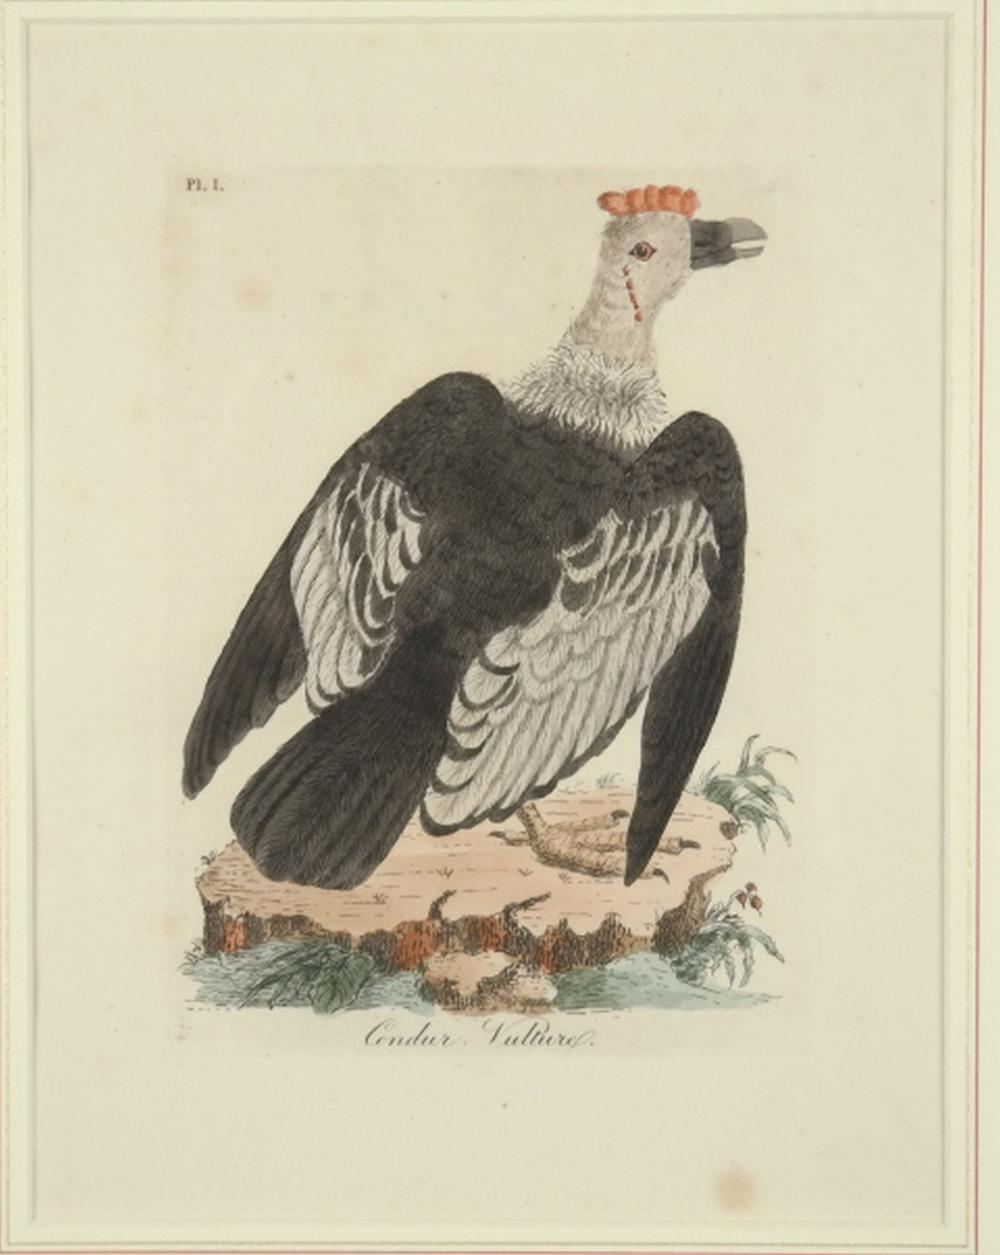 Latham. 4 plates General History of Birds 1820s